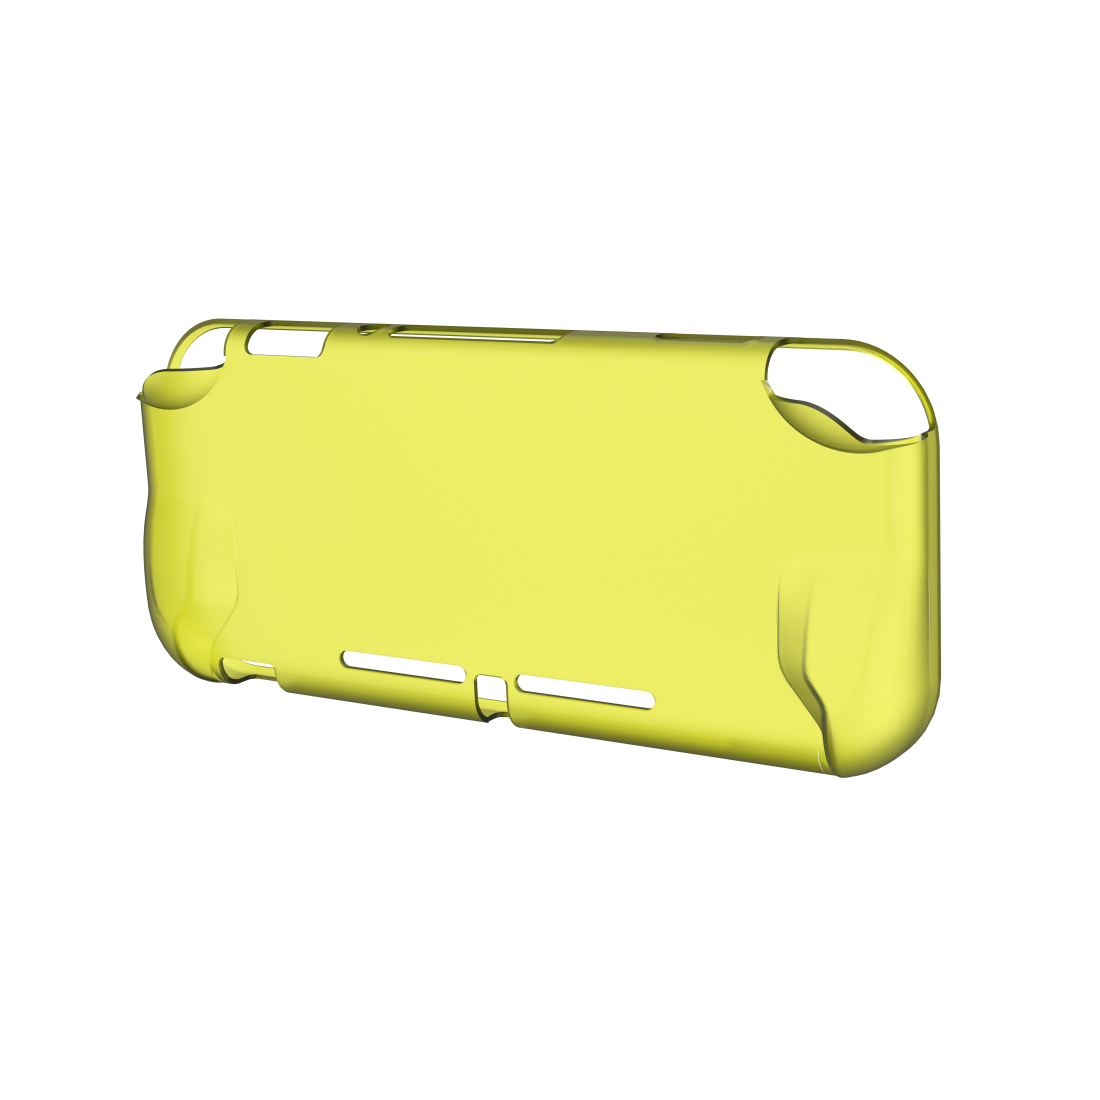 abx2 High-Res Image 2 - Hama, Protective Cover for Nintendo Switch Lite, yellow